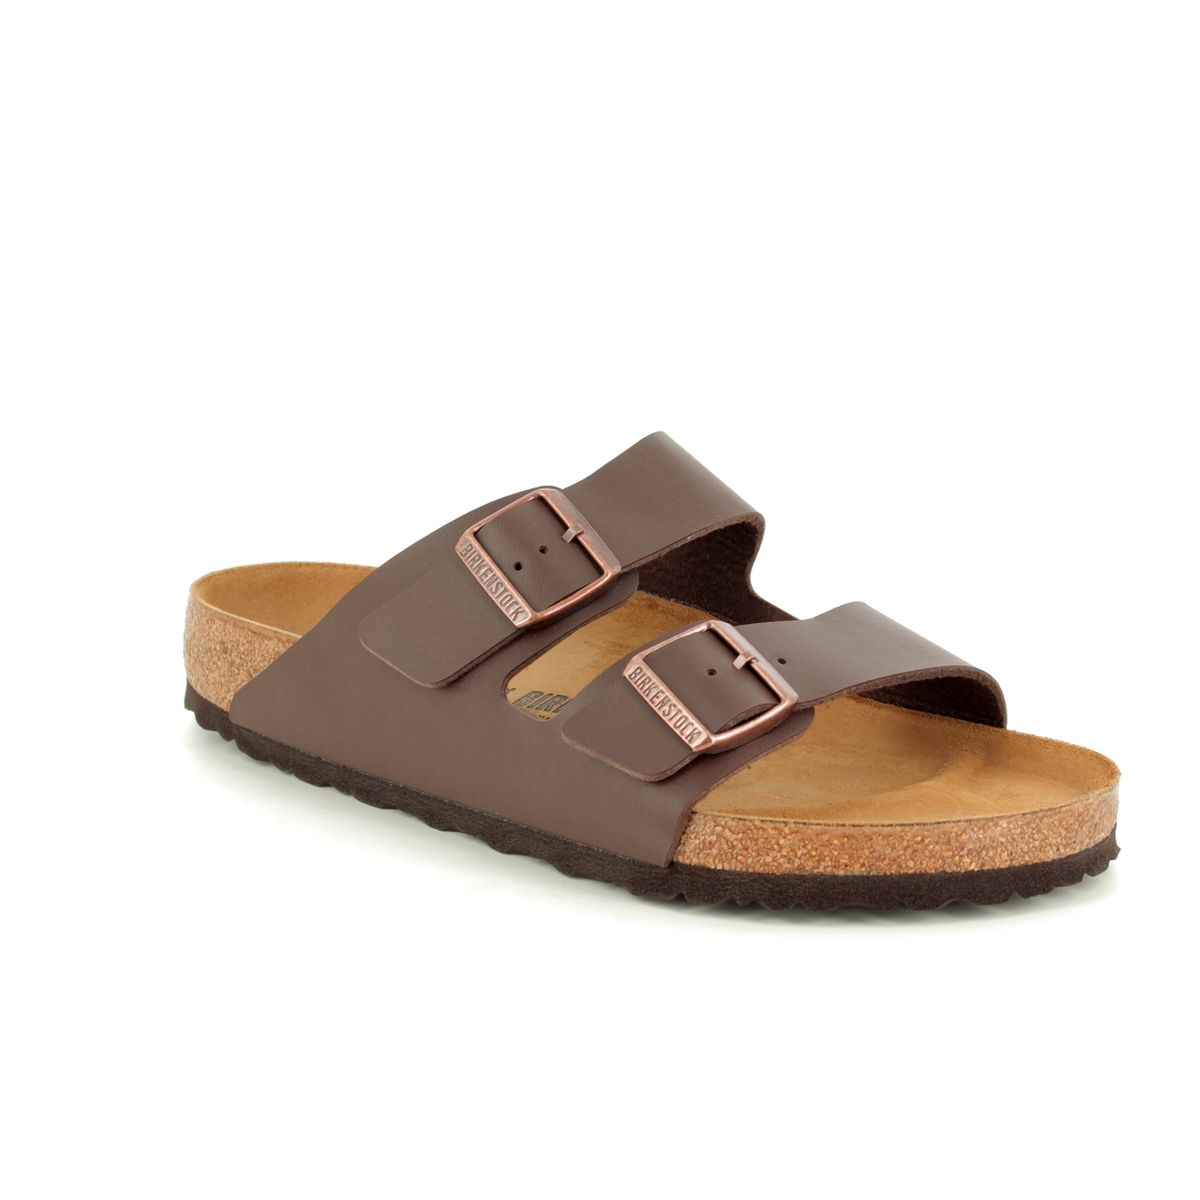 0c67aec9bebdb Birkenstock Sandals - Brown - 051 701 M ARIZONA